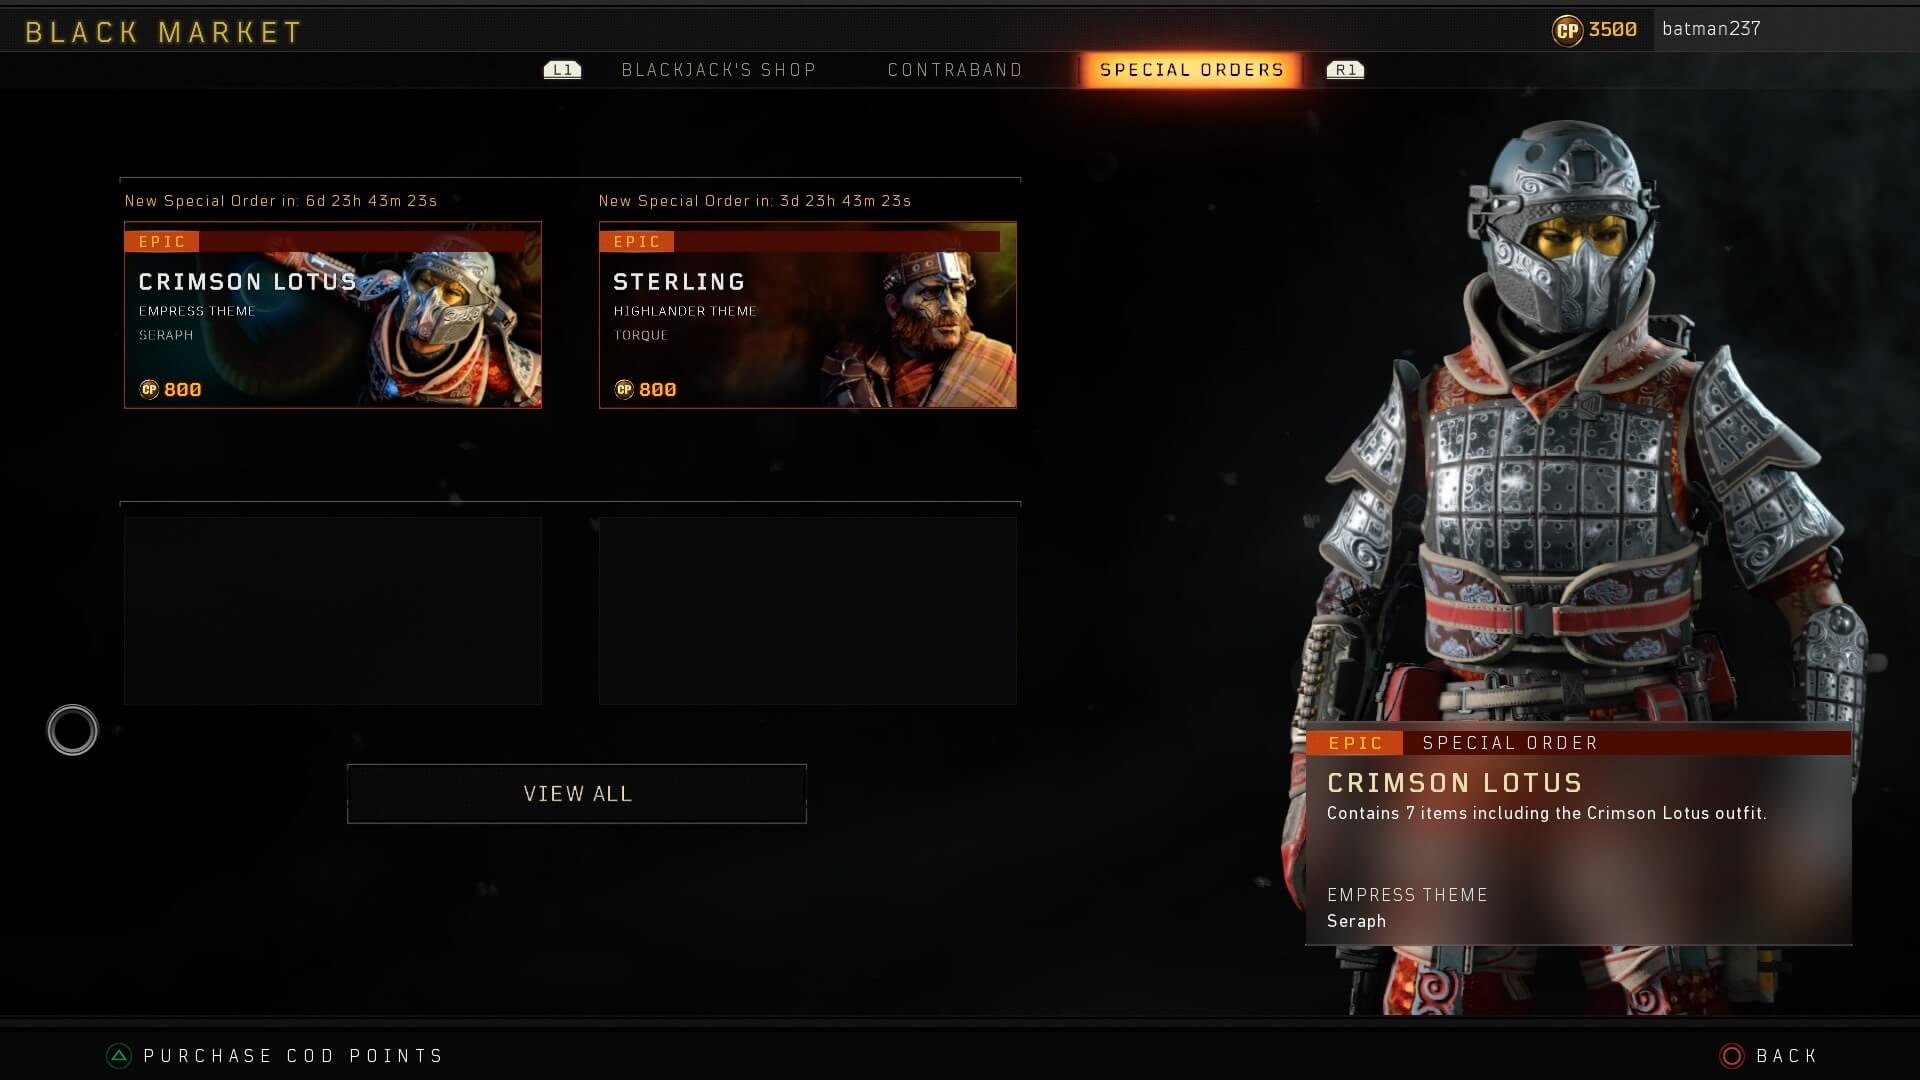 Call of Duty Black Ops 4's Black Market